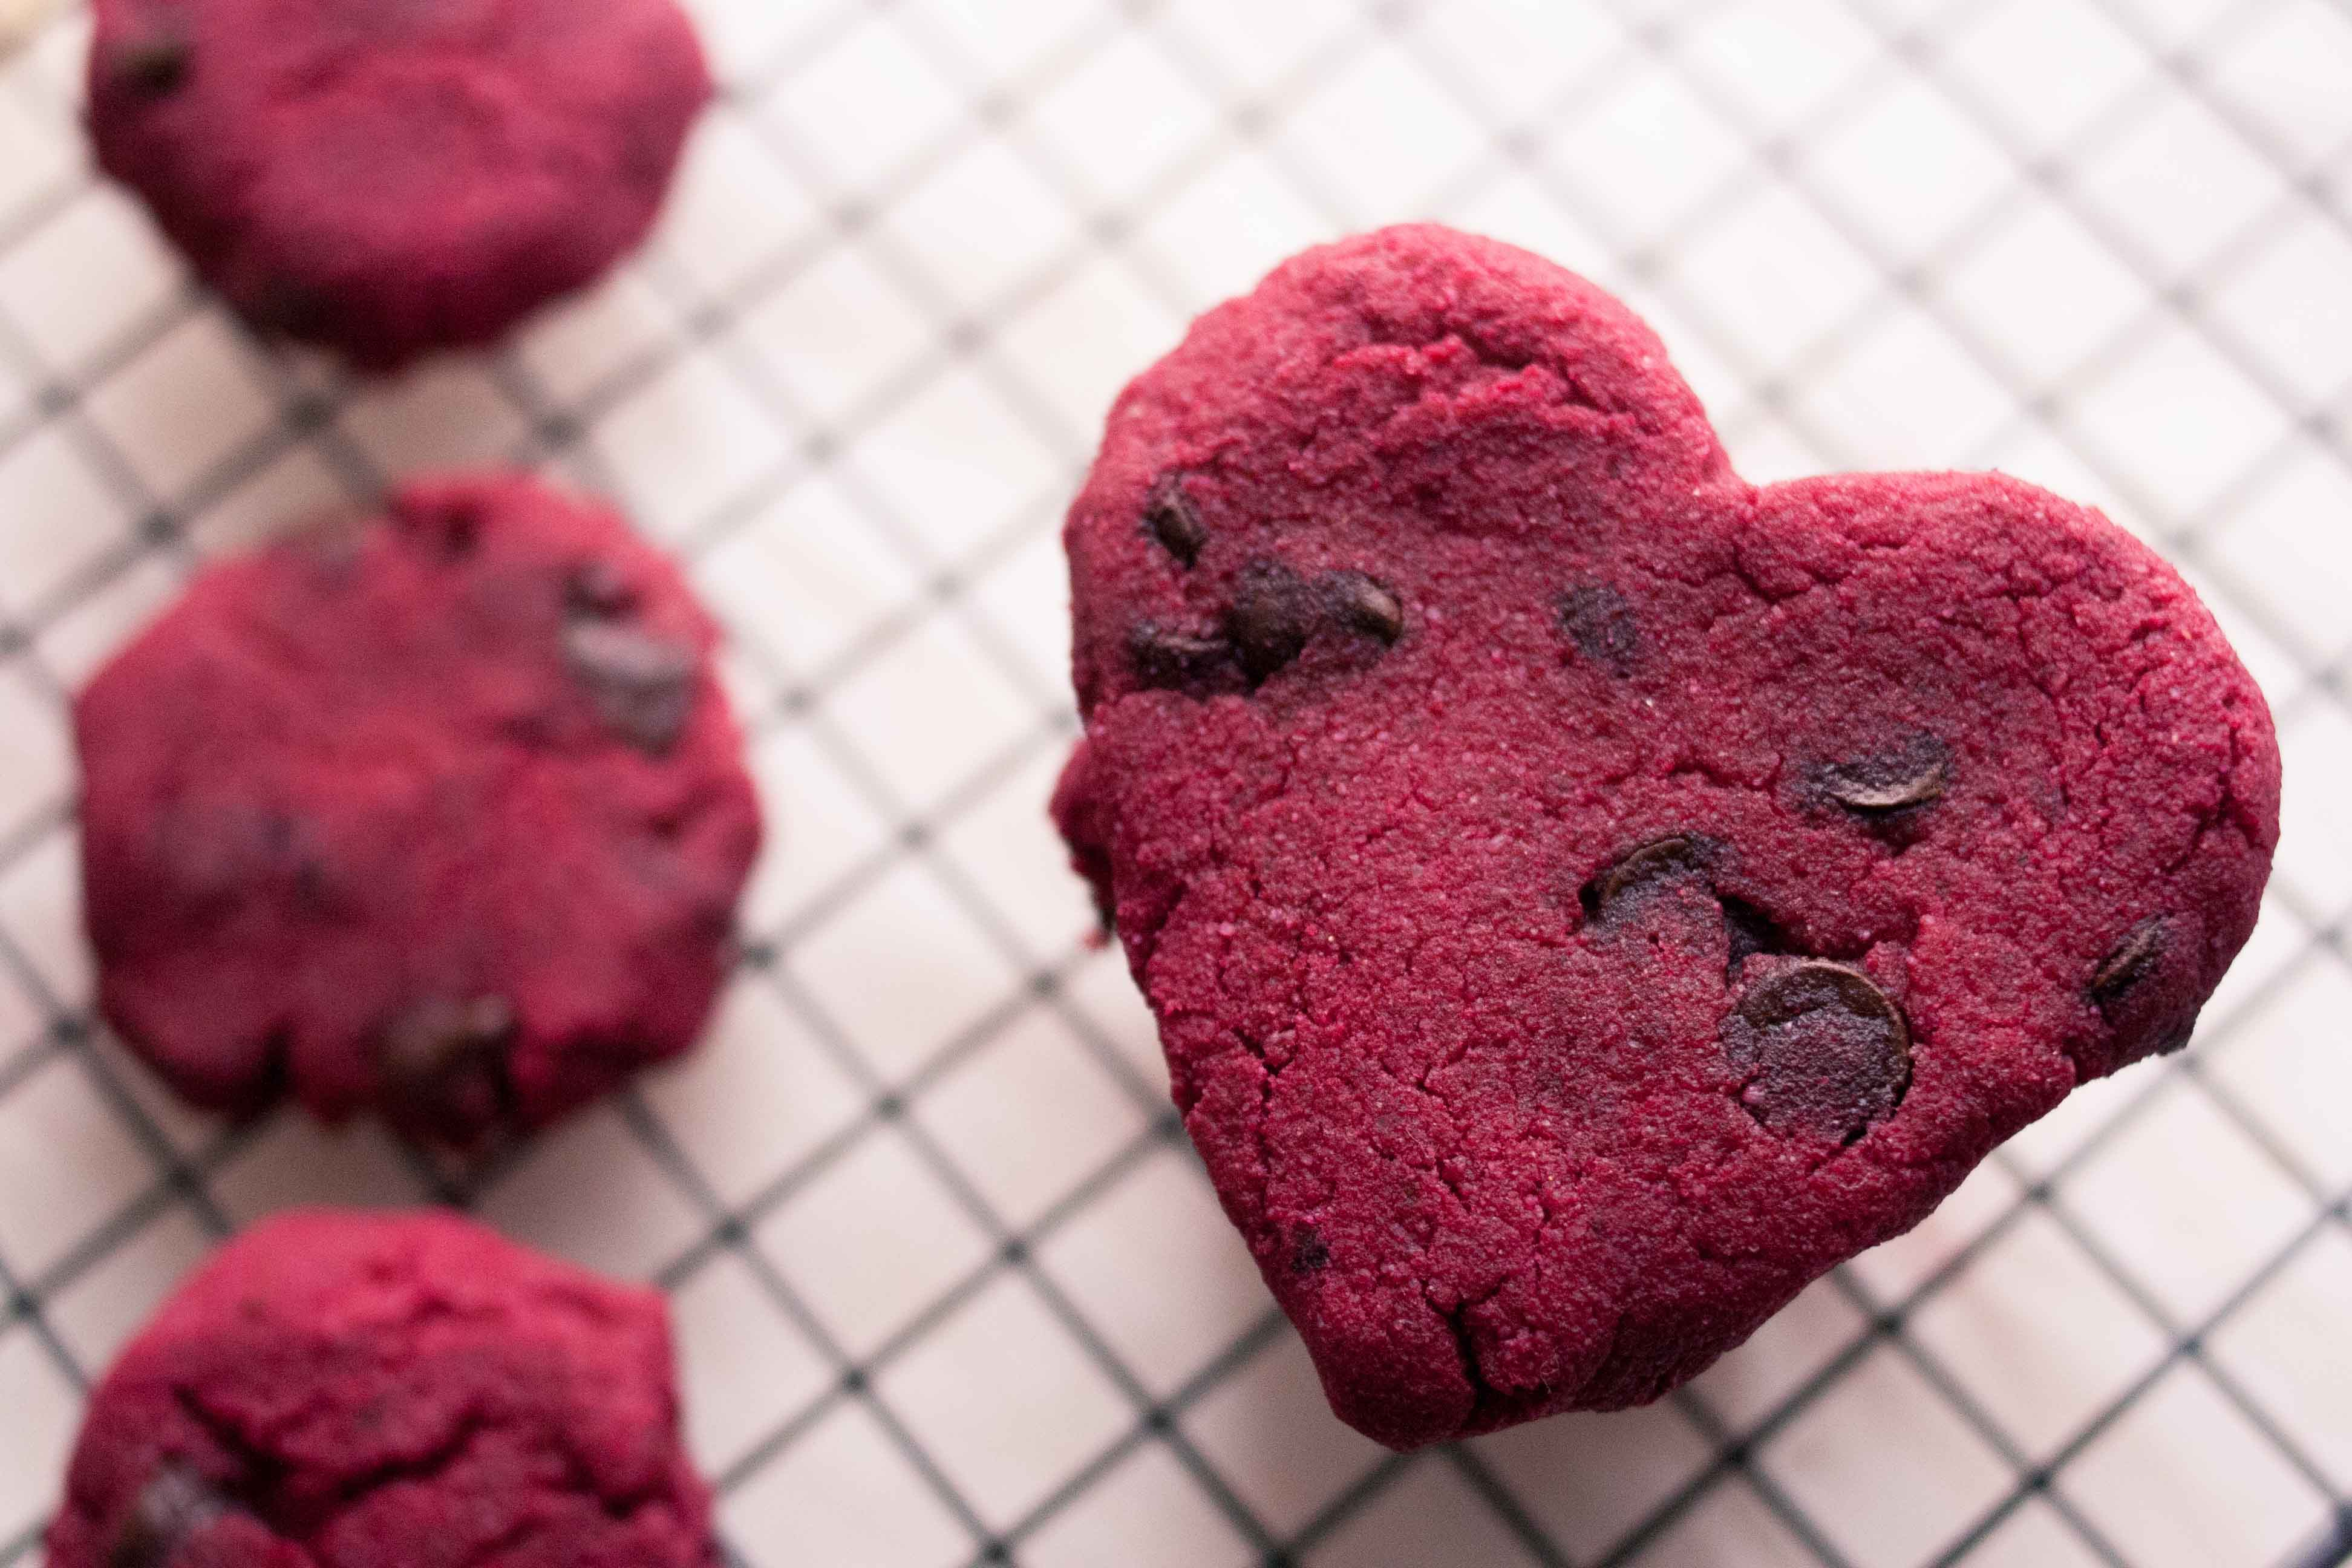 Vgn + GF Chocolate Chip Beet Cookies on A Rainy Day | The Road Not ...